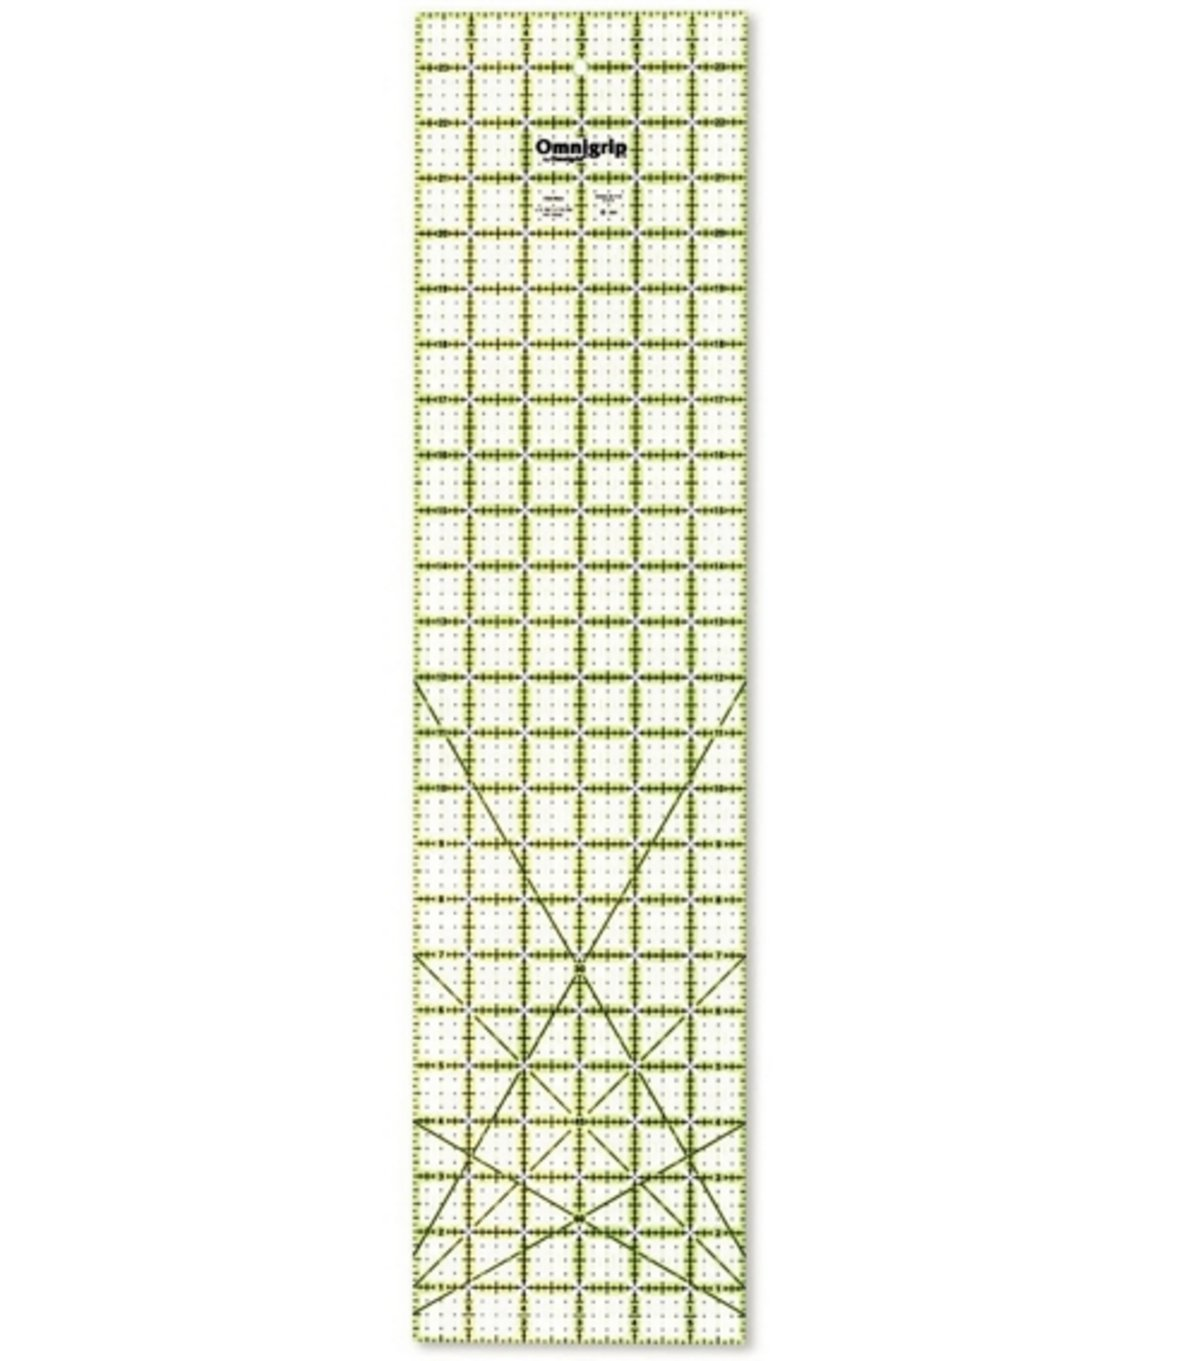 Omnigrip 6-Inch-by-24-Inch Non-Slip Quilter's Ruler RN24